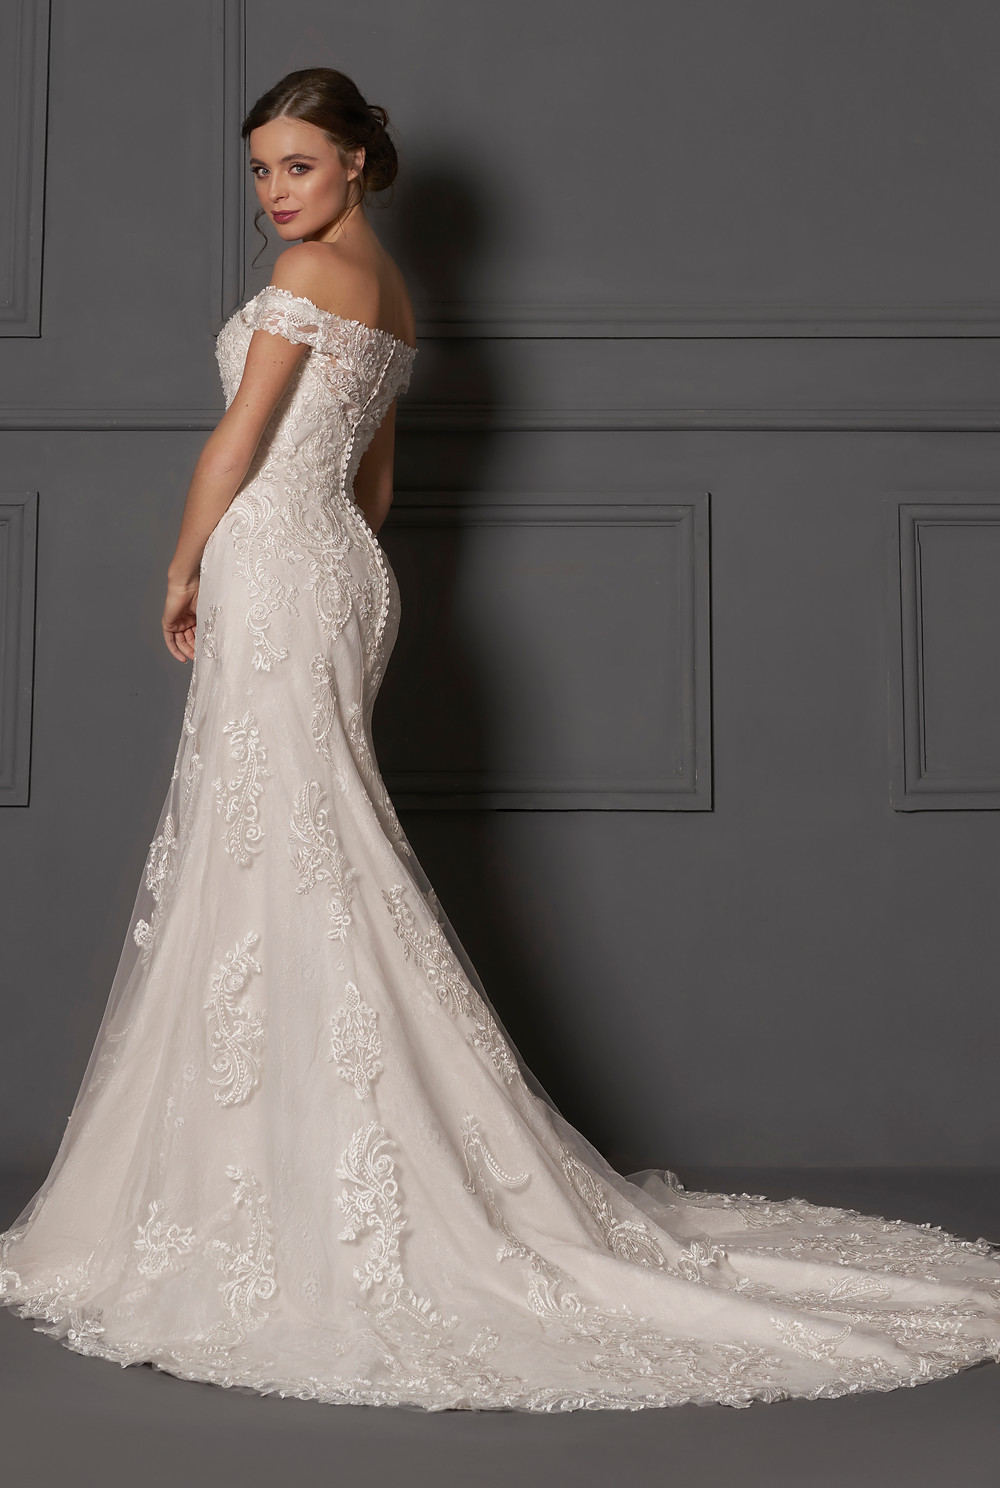 Danielle Couture 2019 Wedding Dress available at Mollydolly's Bridal Boutique